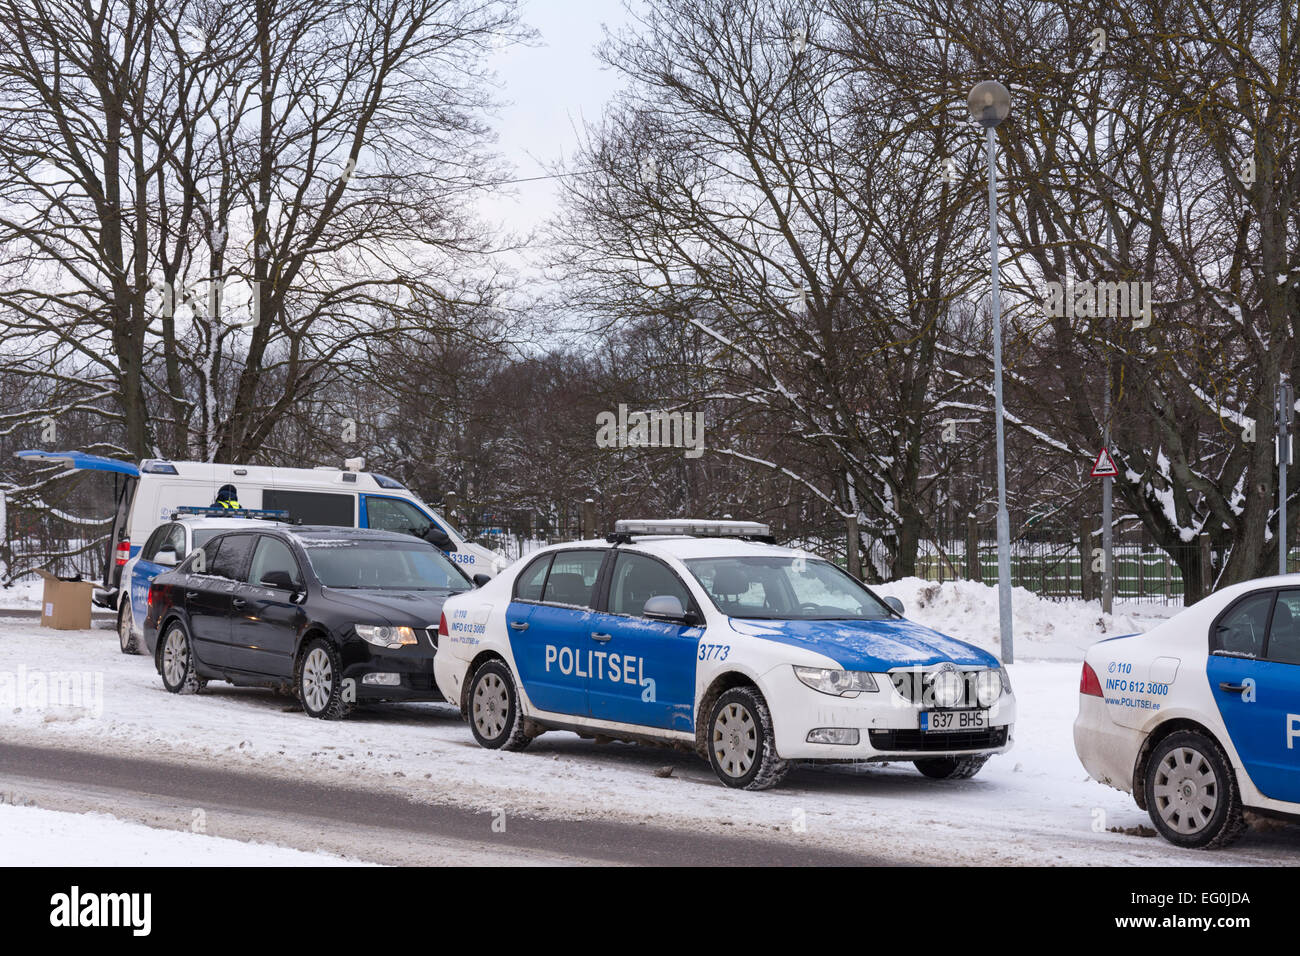 Estonian Police at Pohja puiestee in Tallinn Estonia Stock Photo